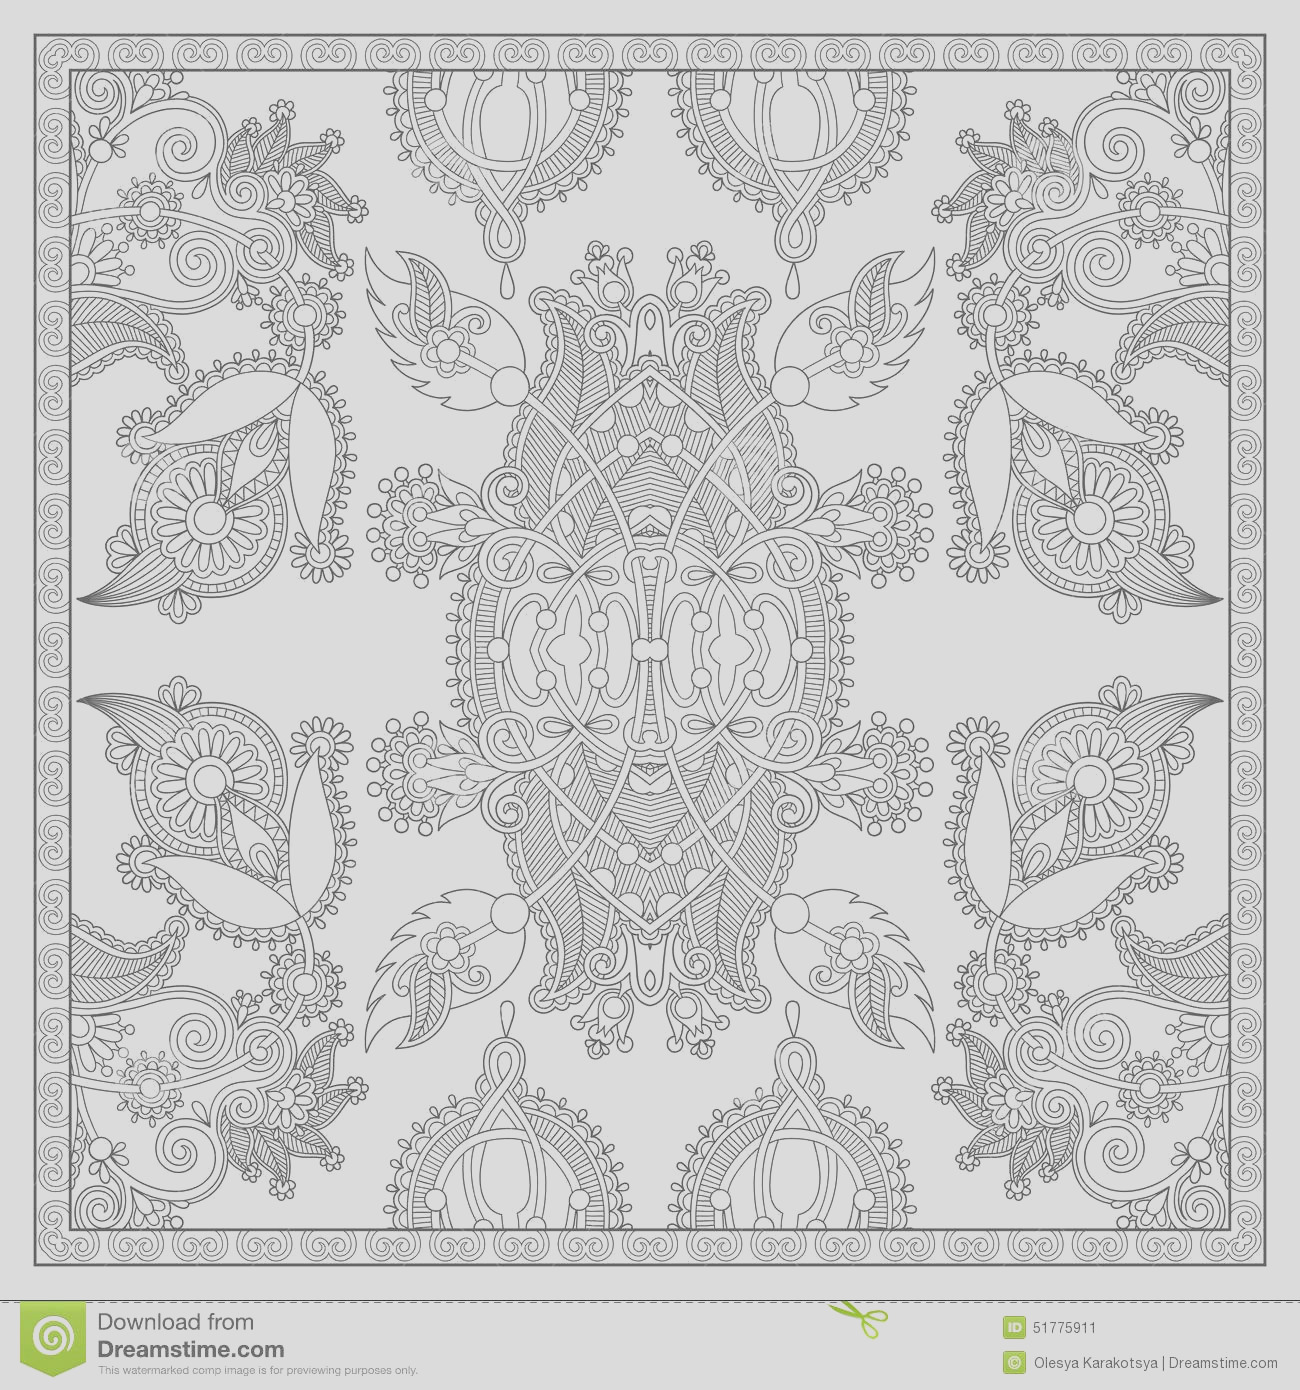 stock illustration unique coloring book square page adults floral carpet design joy to older children adult colorists who like line art image